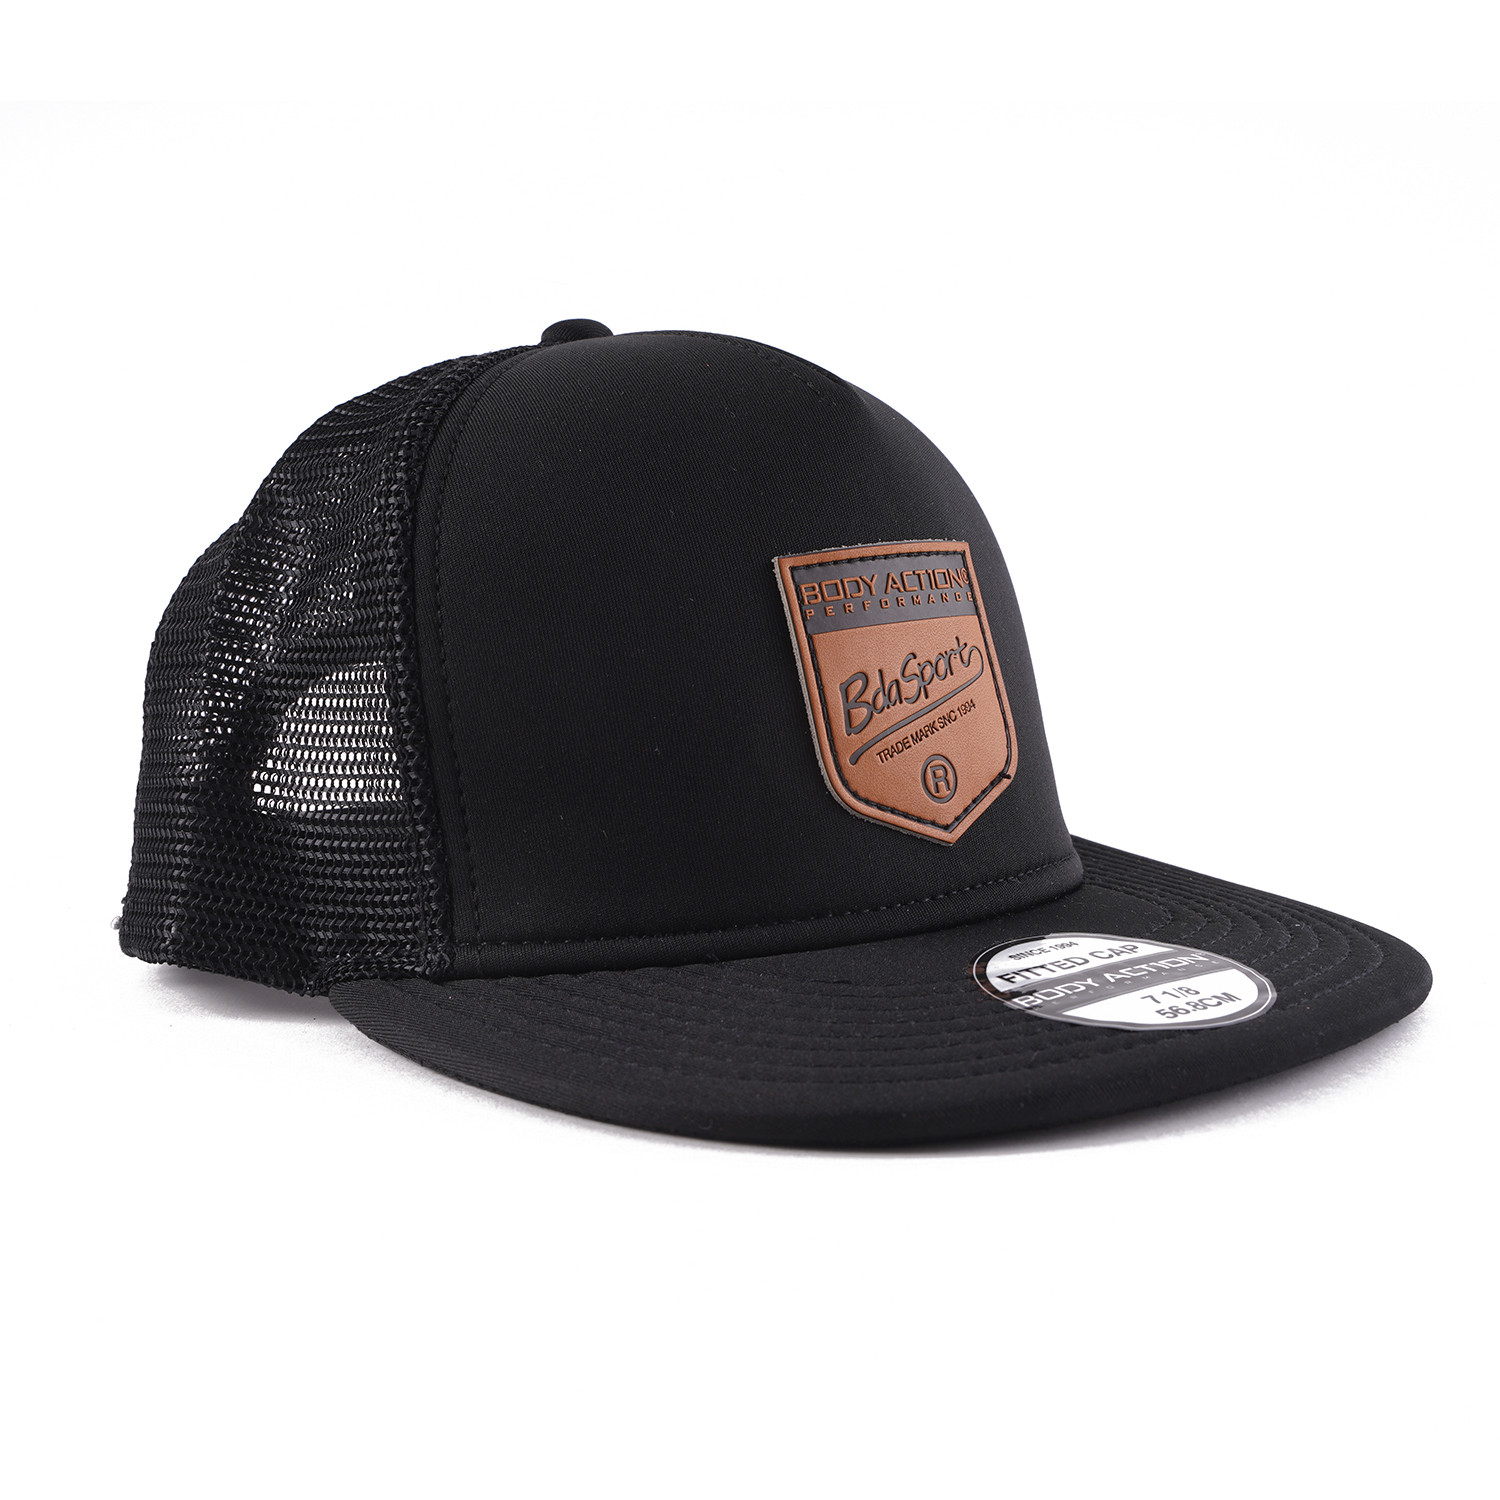 Body Action Flat Unisex Trucker Cap (9000050132_1899)